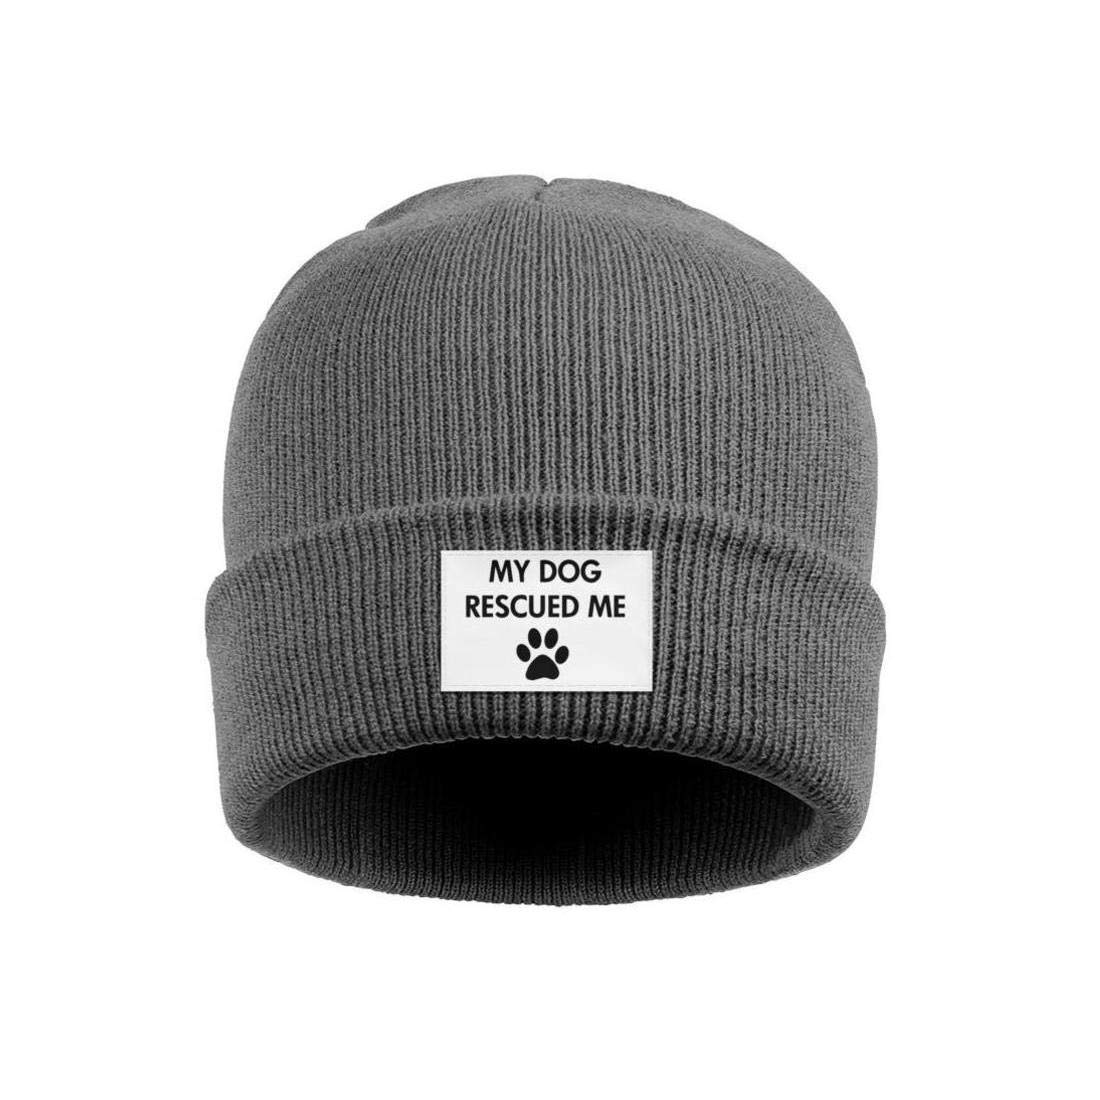 4c0e75cb6c3 Amazon.com  Knit Cap Unisex Woolen Caps in Dog Years I Would Be 350 Beanie  Skull Hats  Clothing